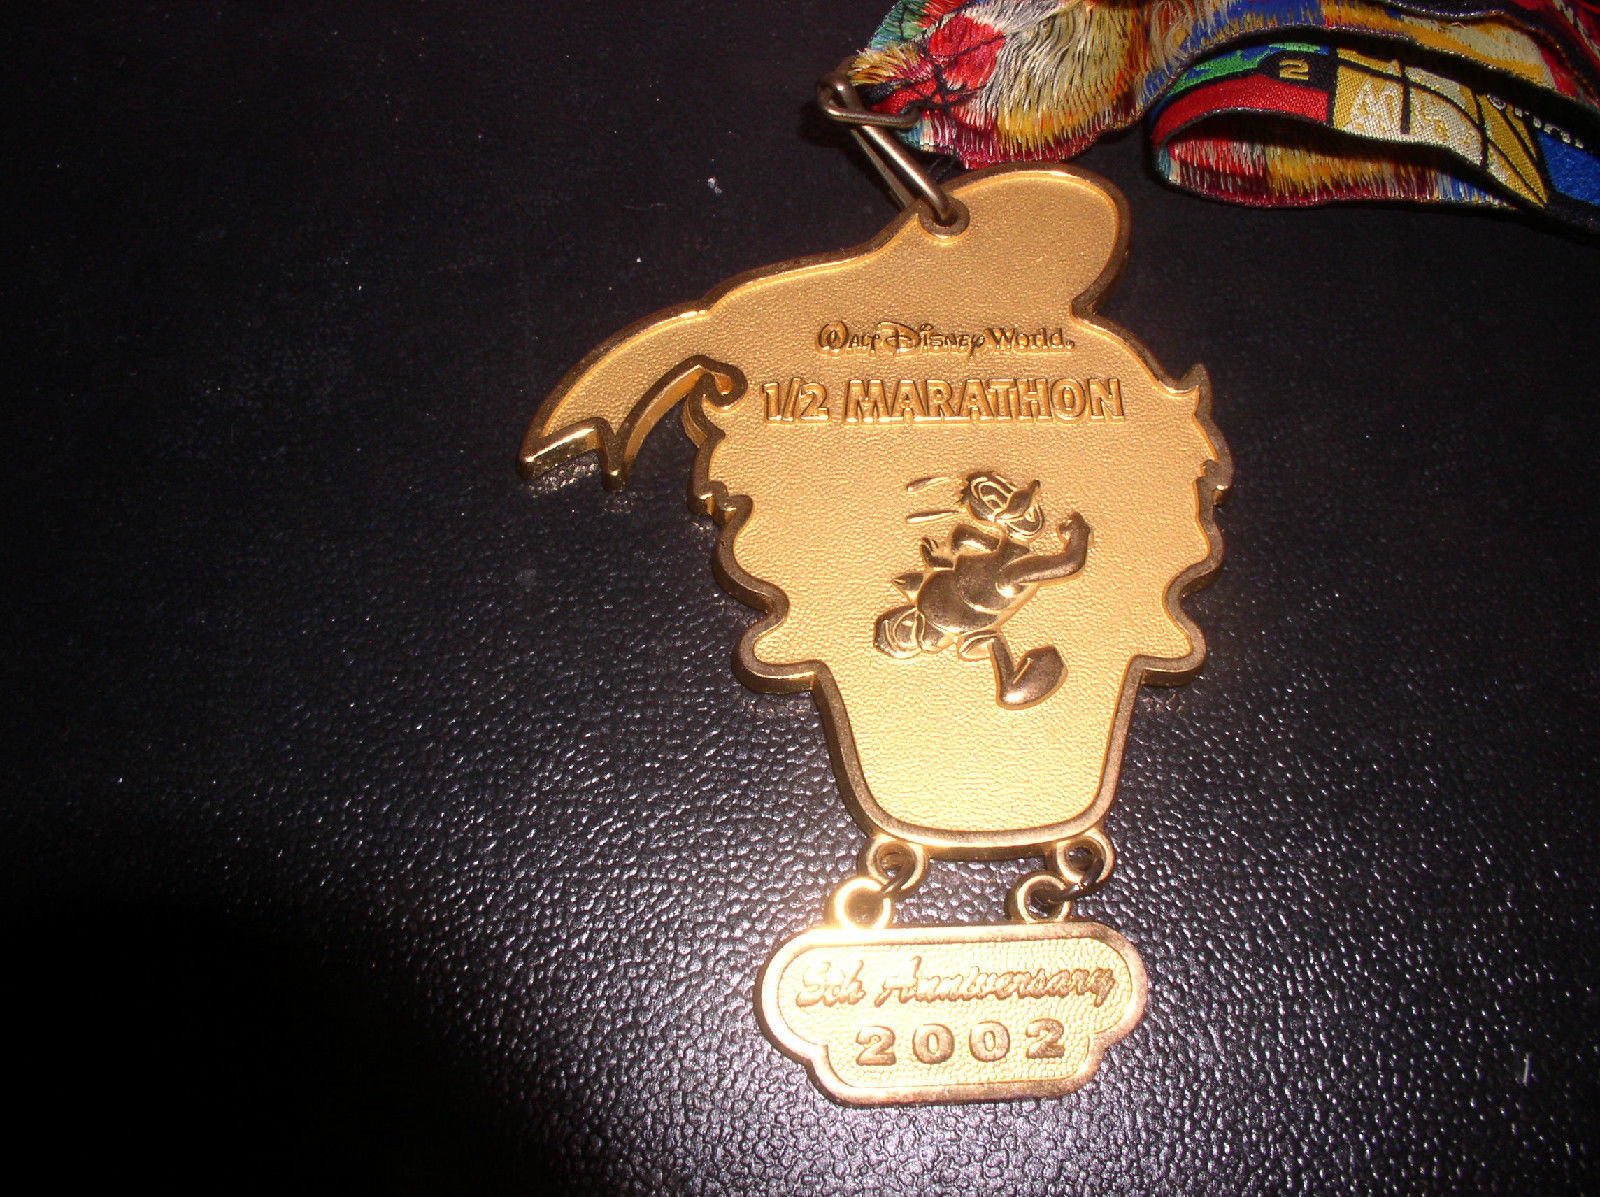 Primary image for Disney WDW  1/2 marathon dated 2002  Donald Duck Dalangle lanyard Pin/Pins